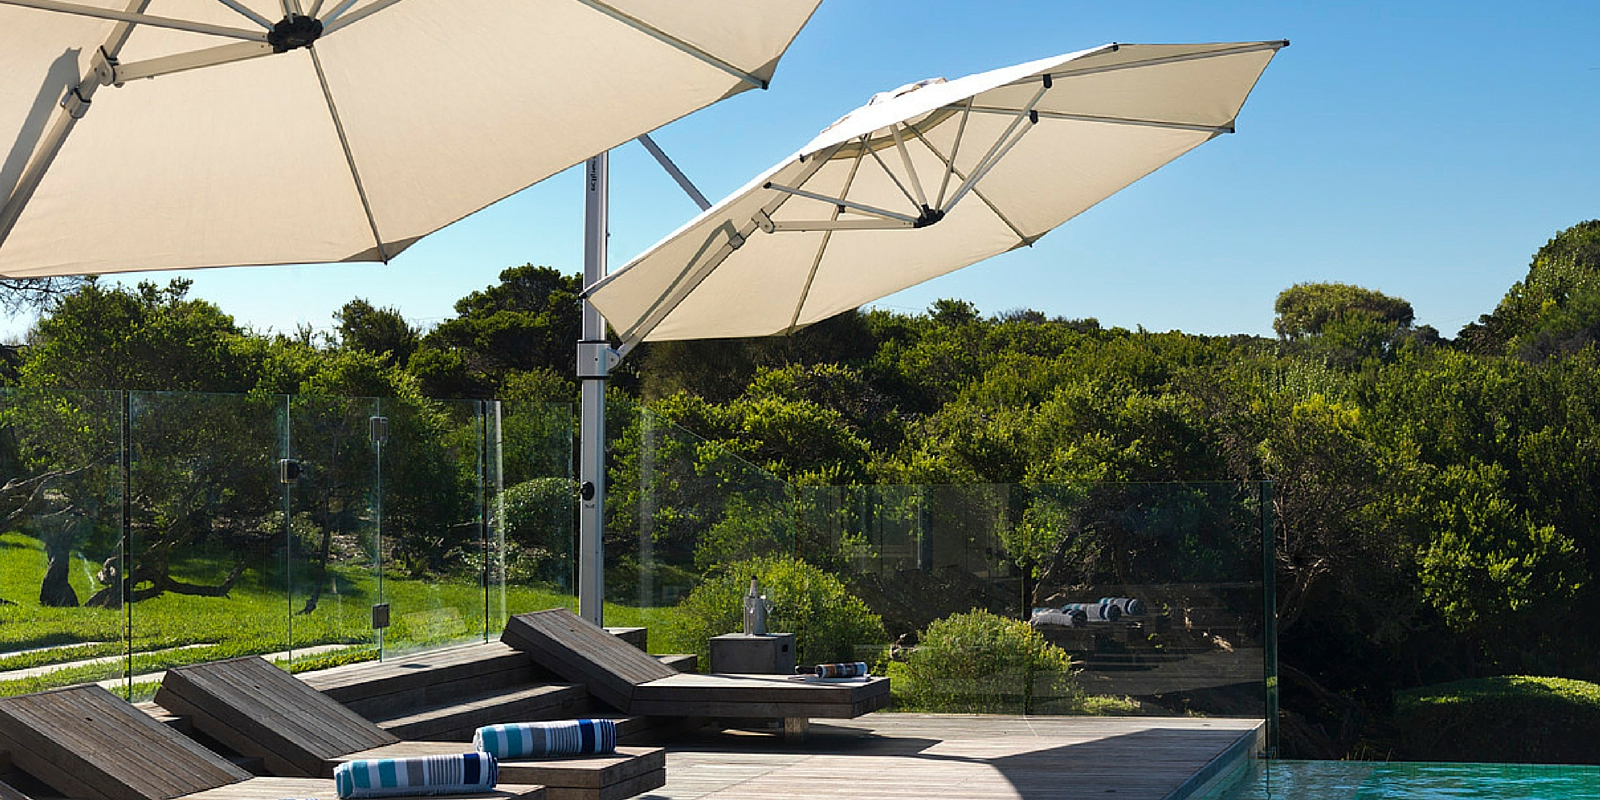 Stay Cool With Outdoor Umbrellas For Preferred Mald Square Cantilever Umbrellas (View 15 of 20)